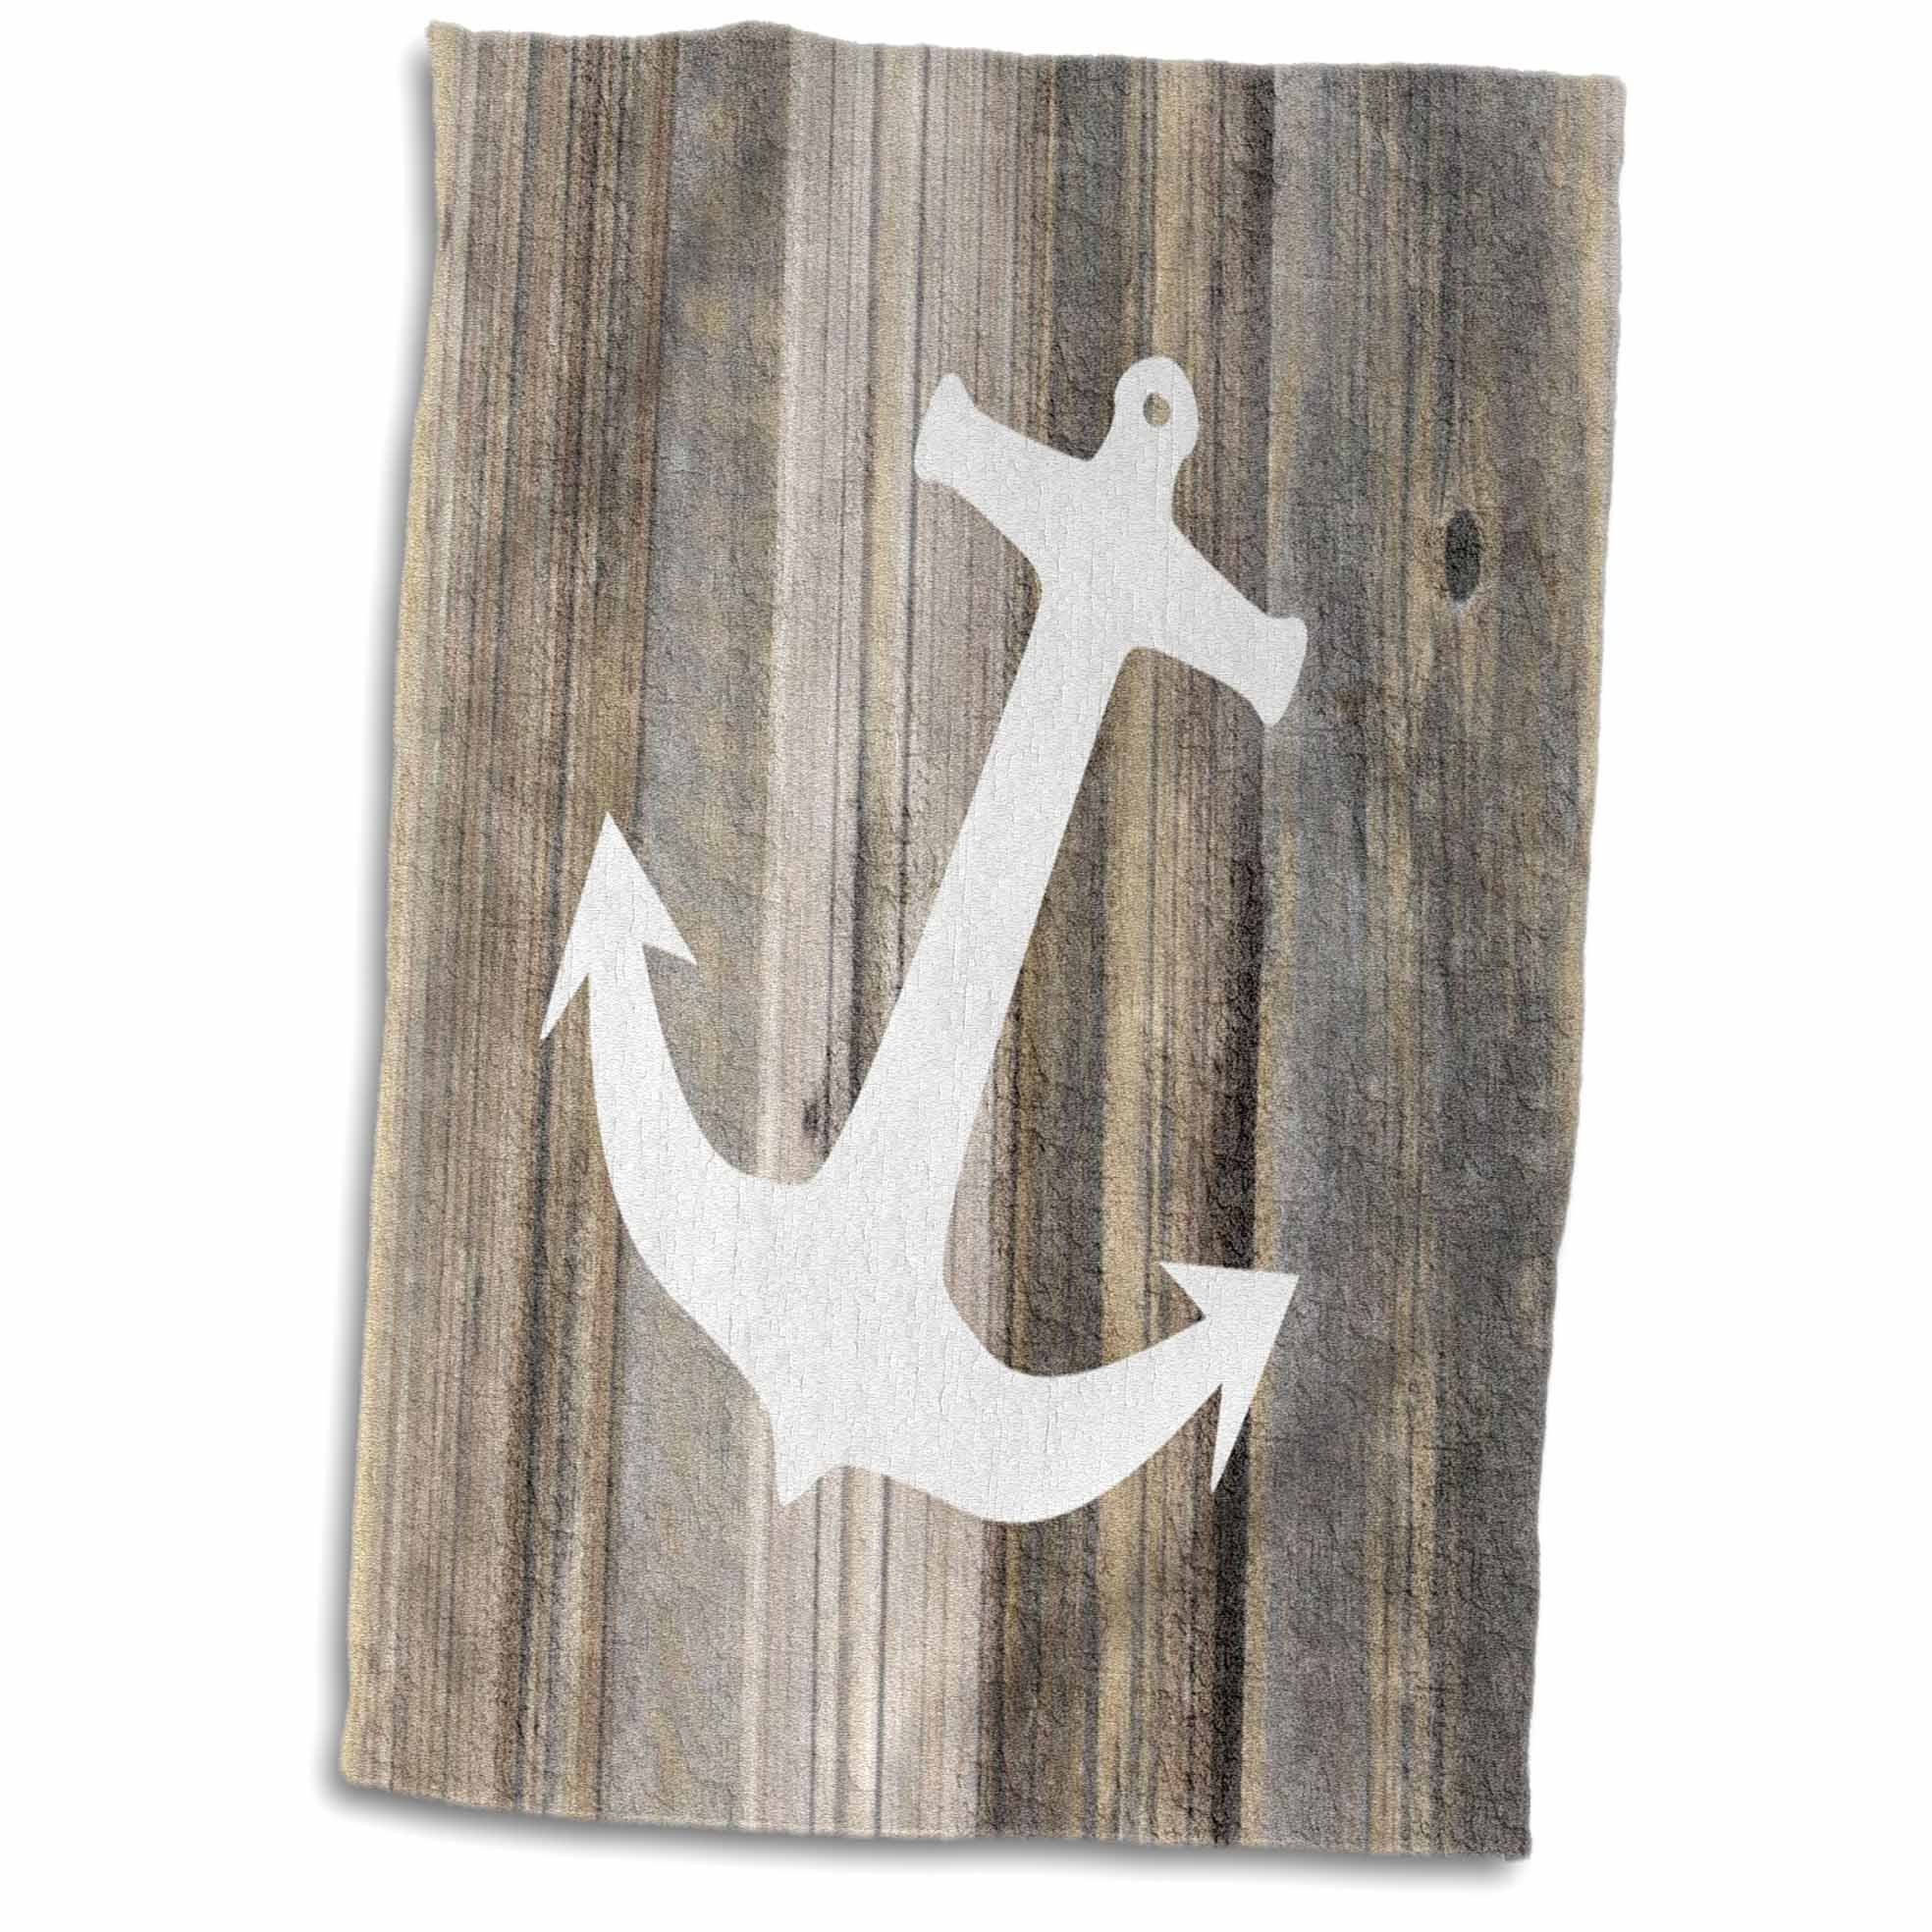 3D Rose Image of White Anchor On Weathered Planks Hand Towel, 15'' x 22''